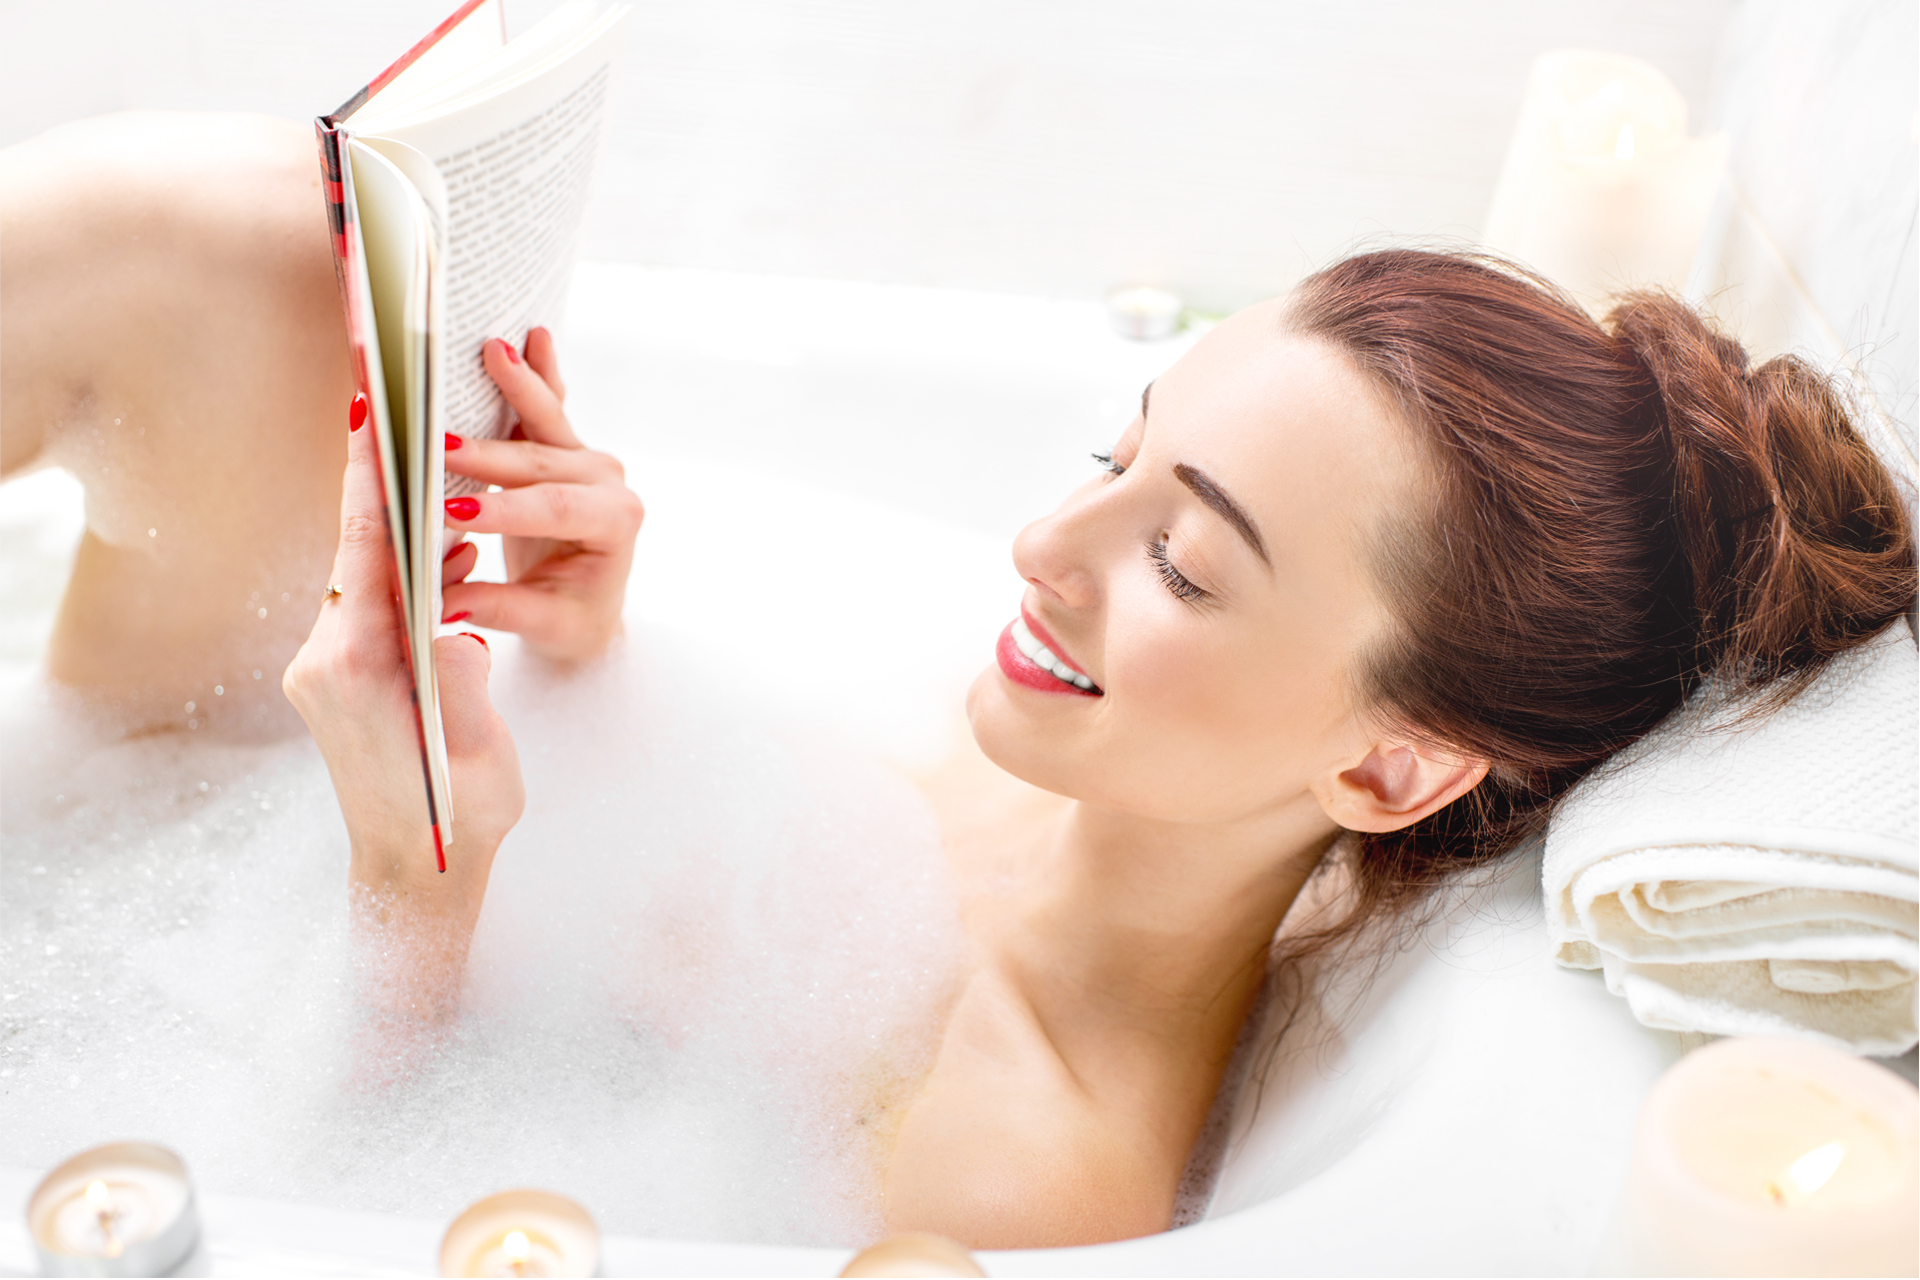 Book and Bubble Bath